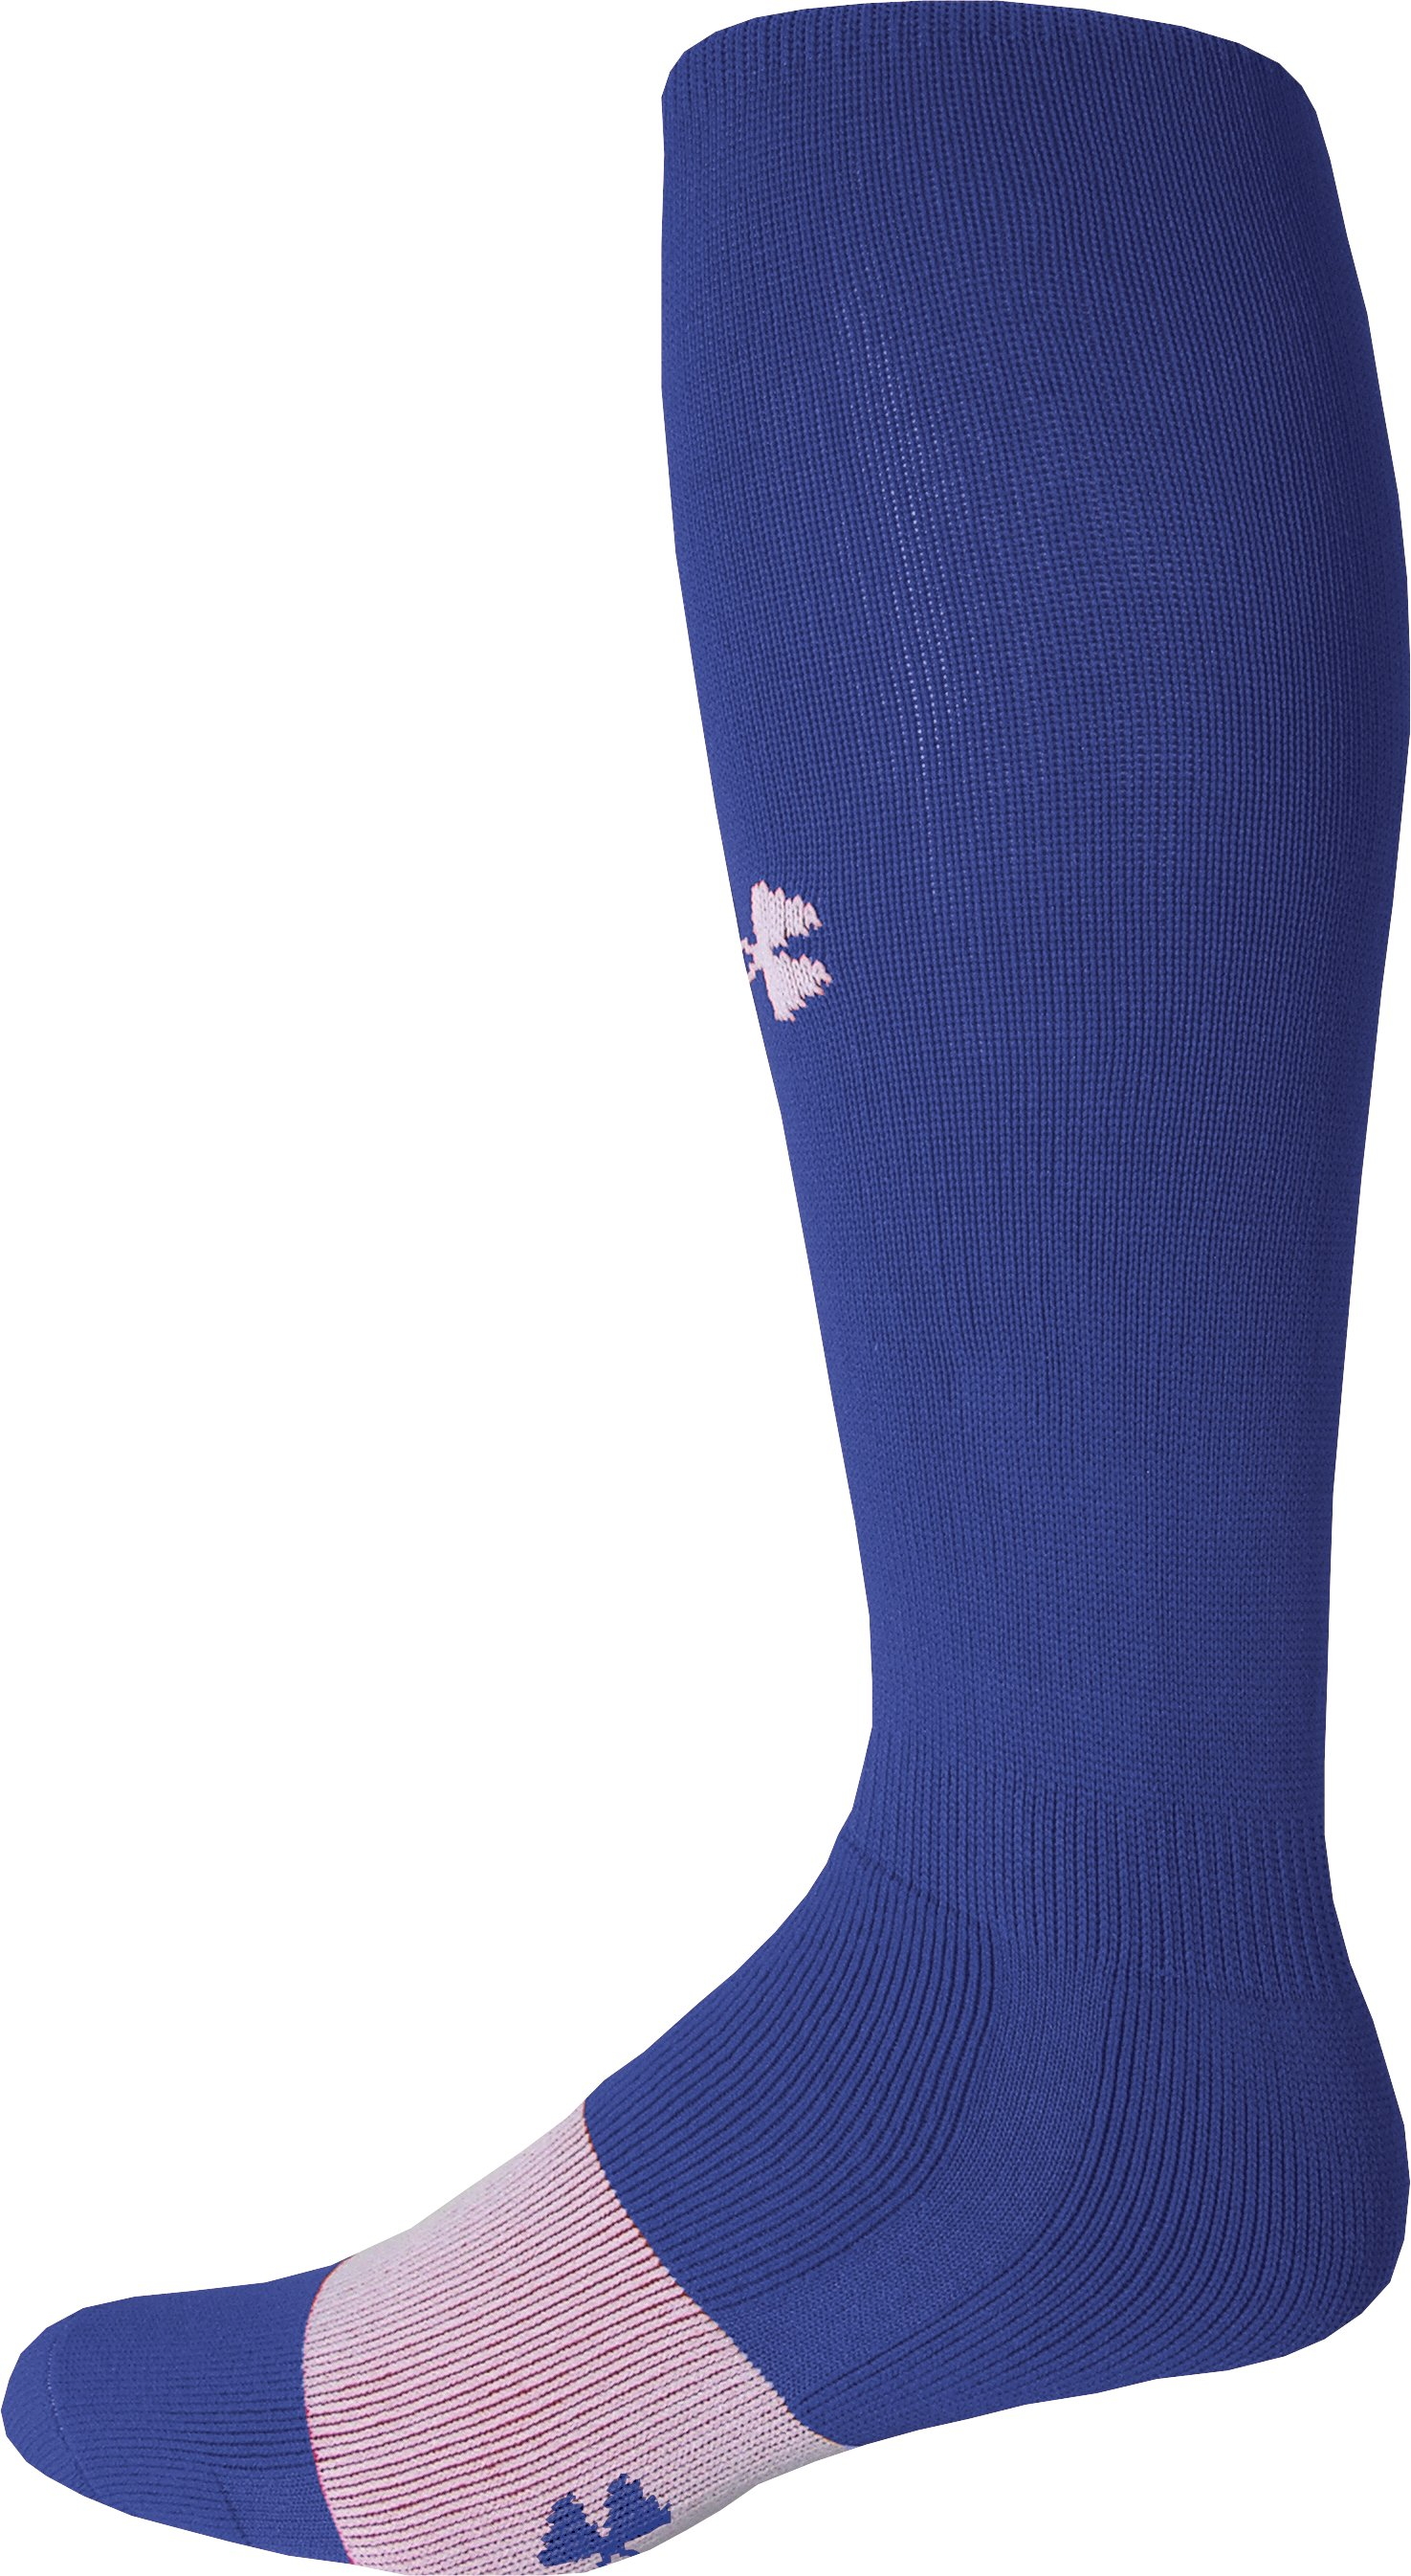 Men's Baseball Sock, Royal